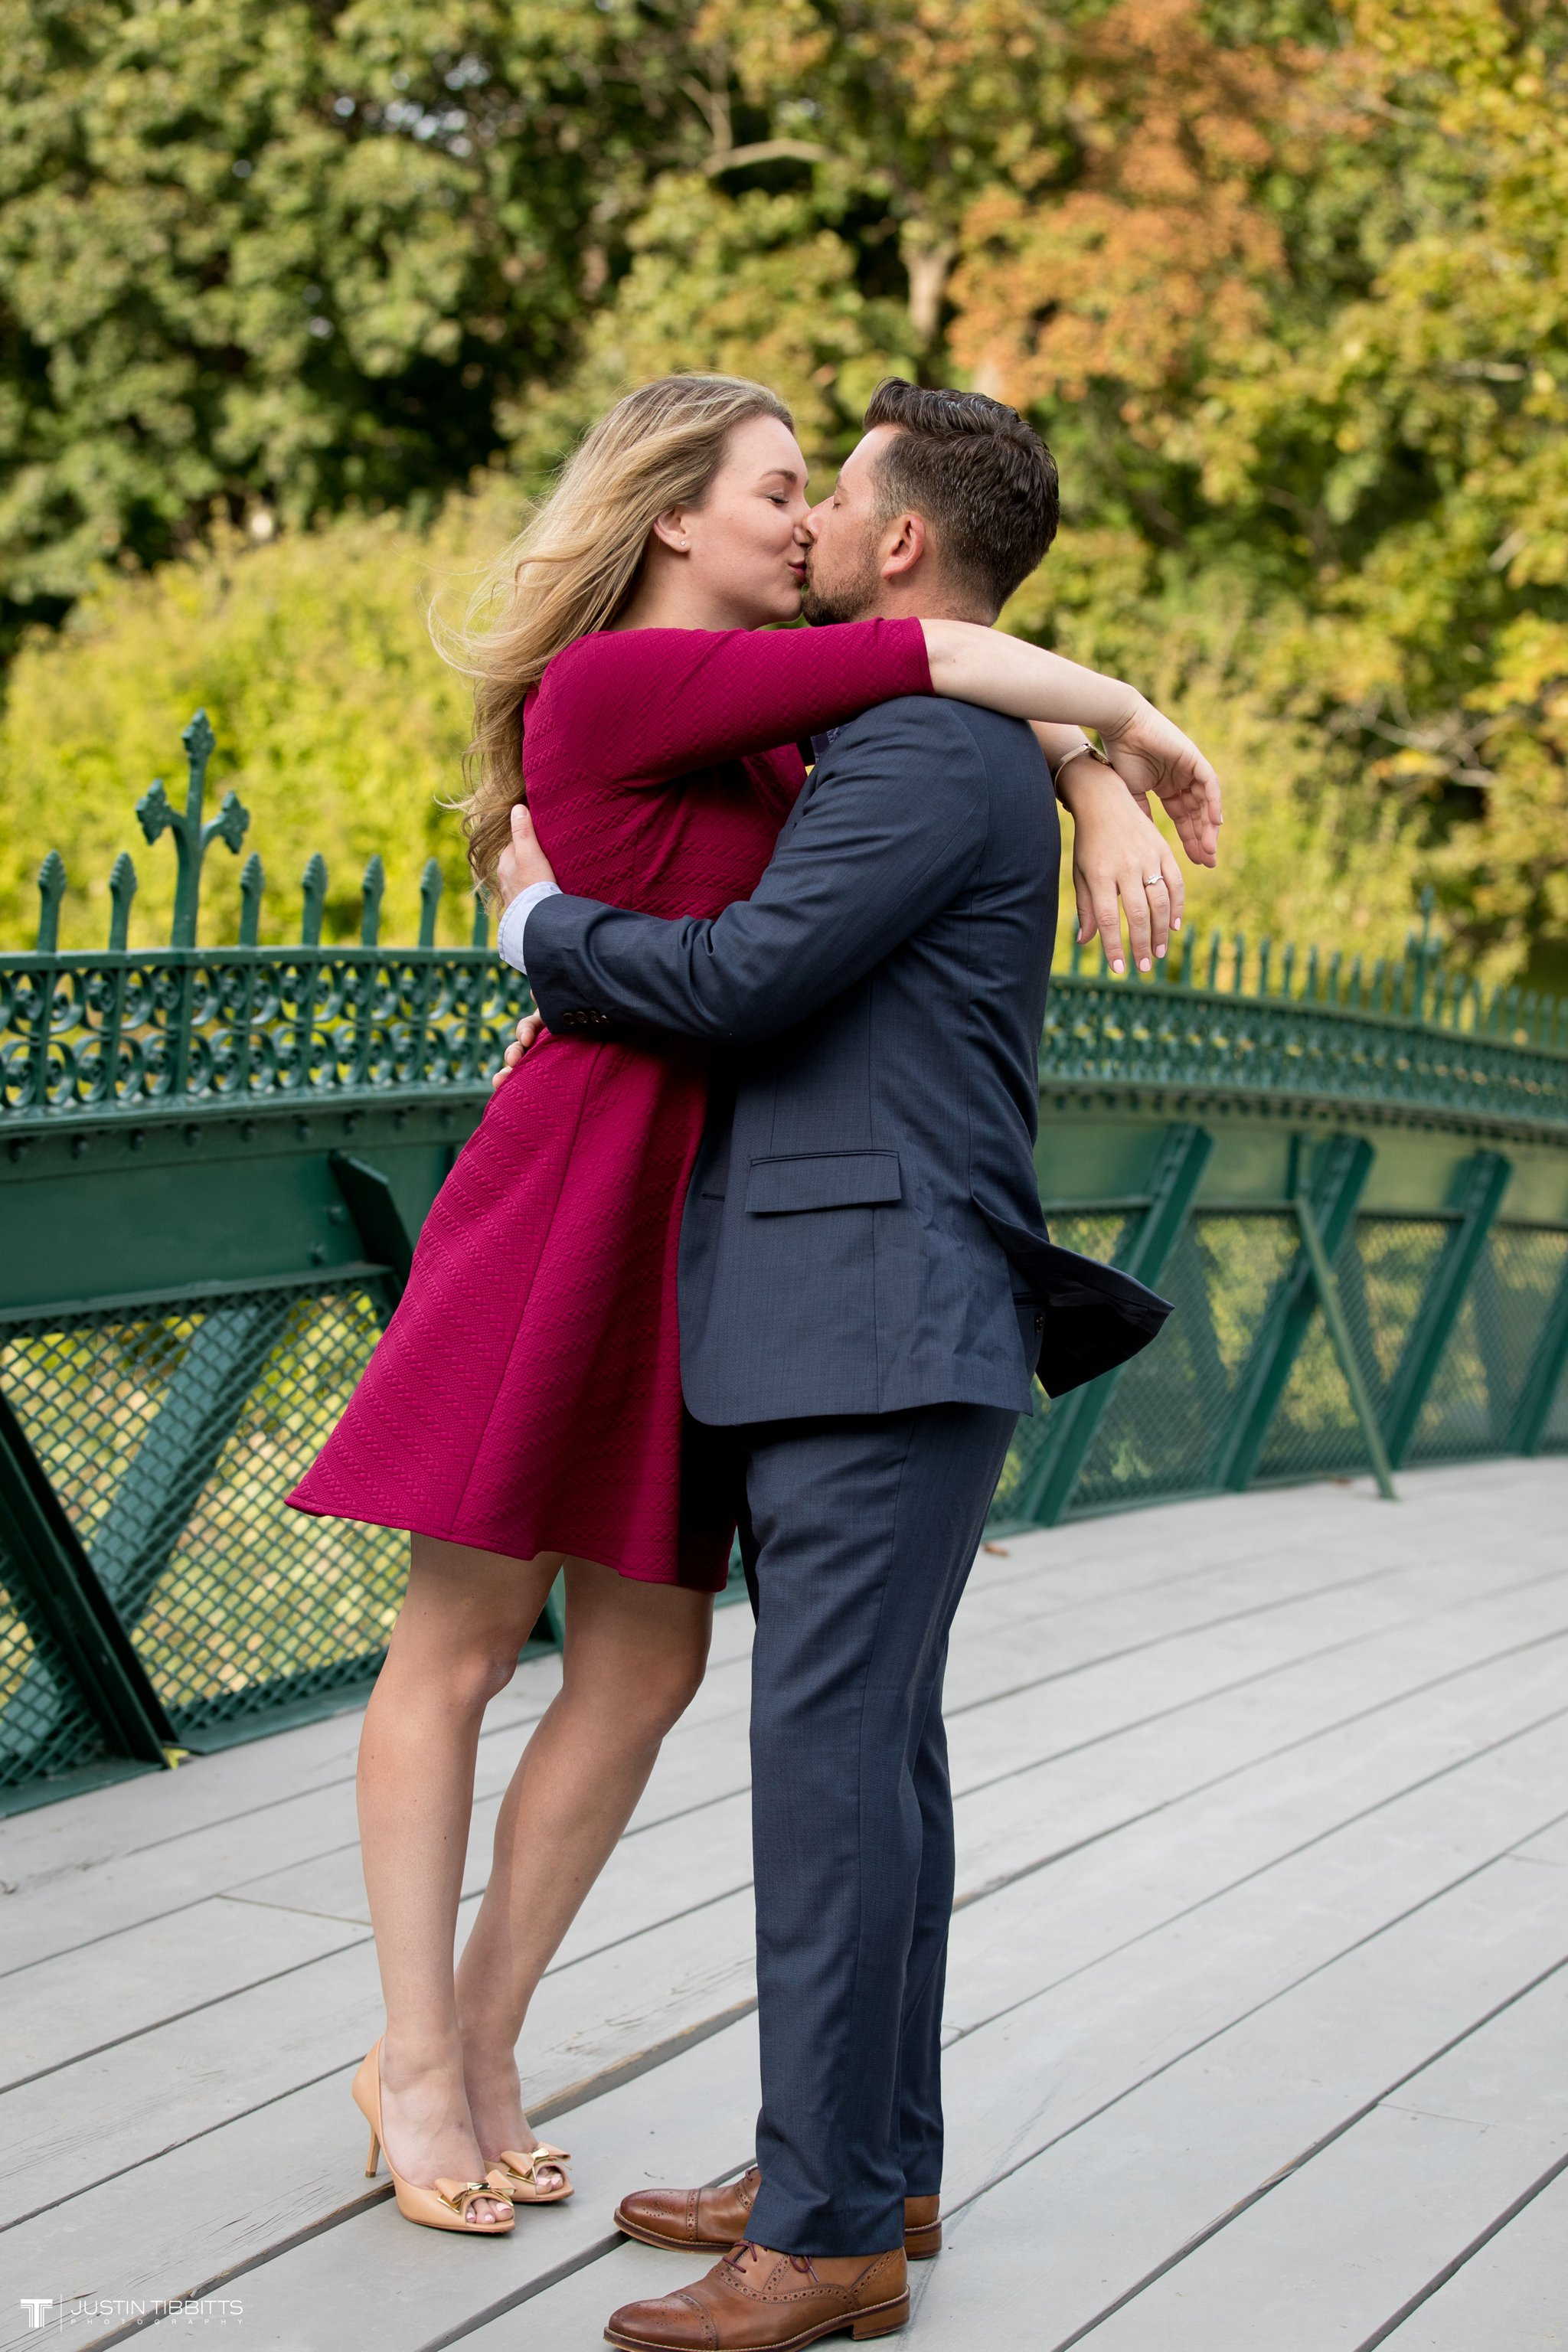 washington-park-albany-ny-engagement-photos-with-andrea-and-dan_0005